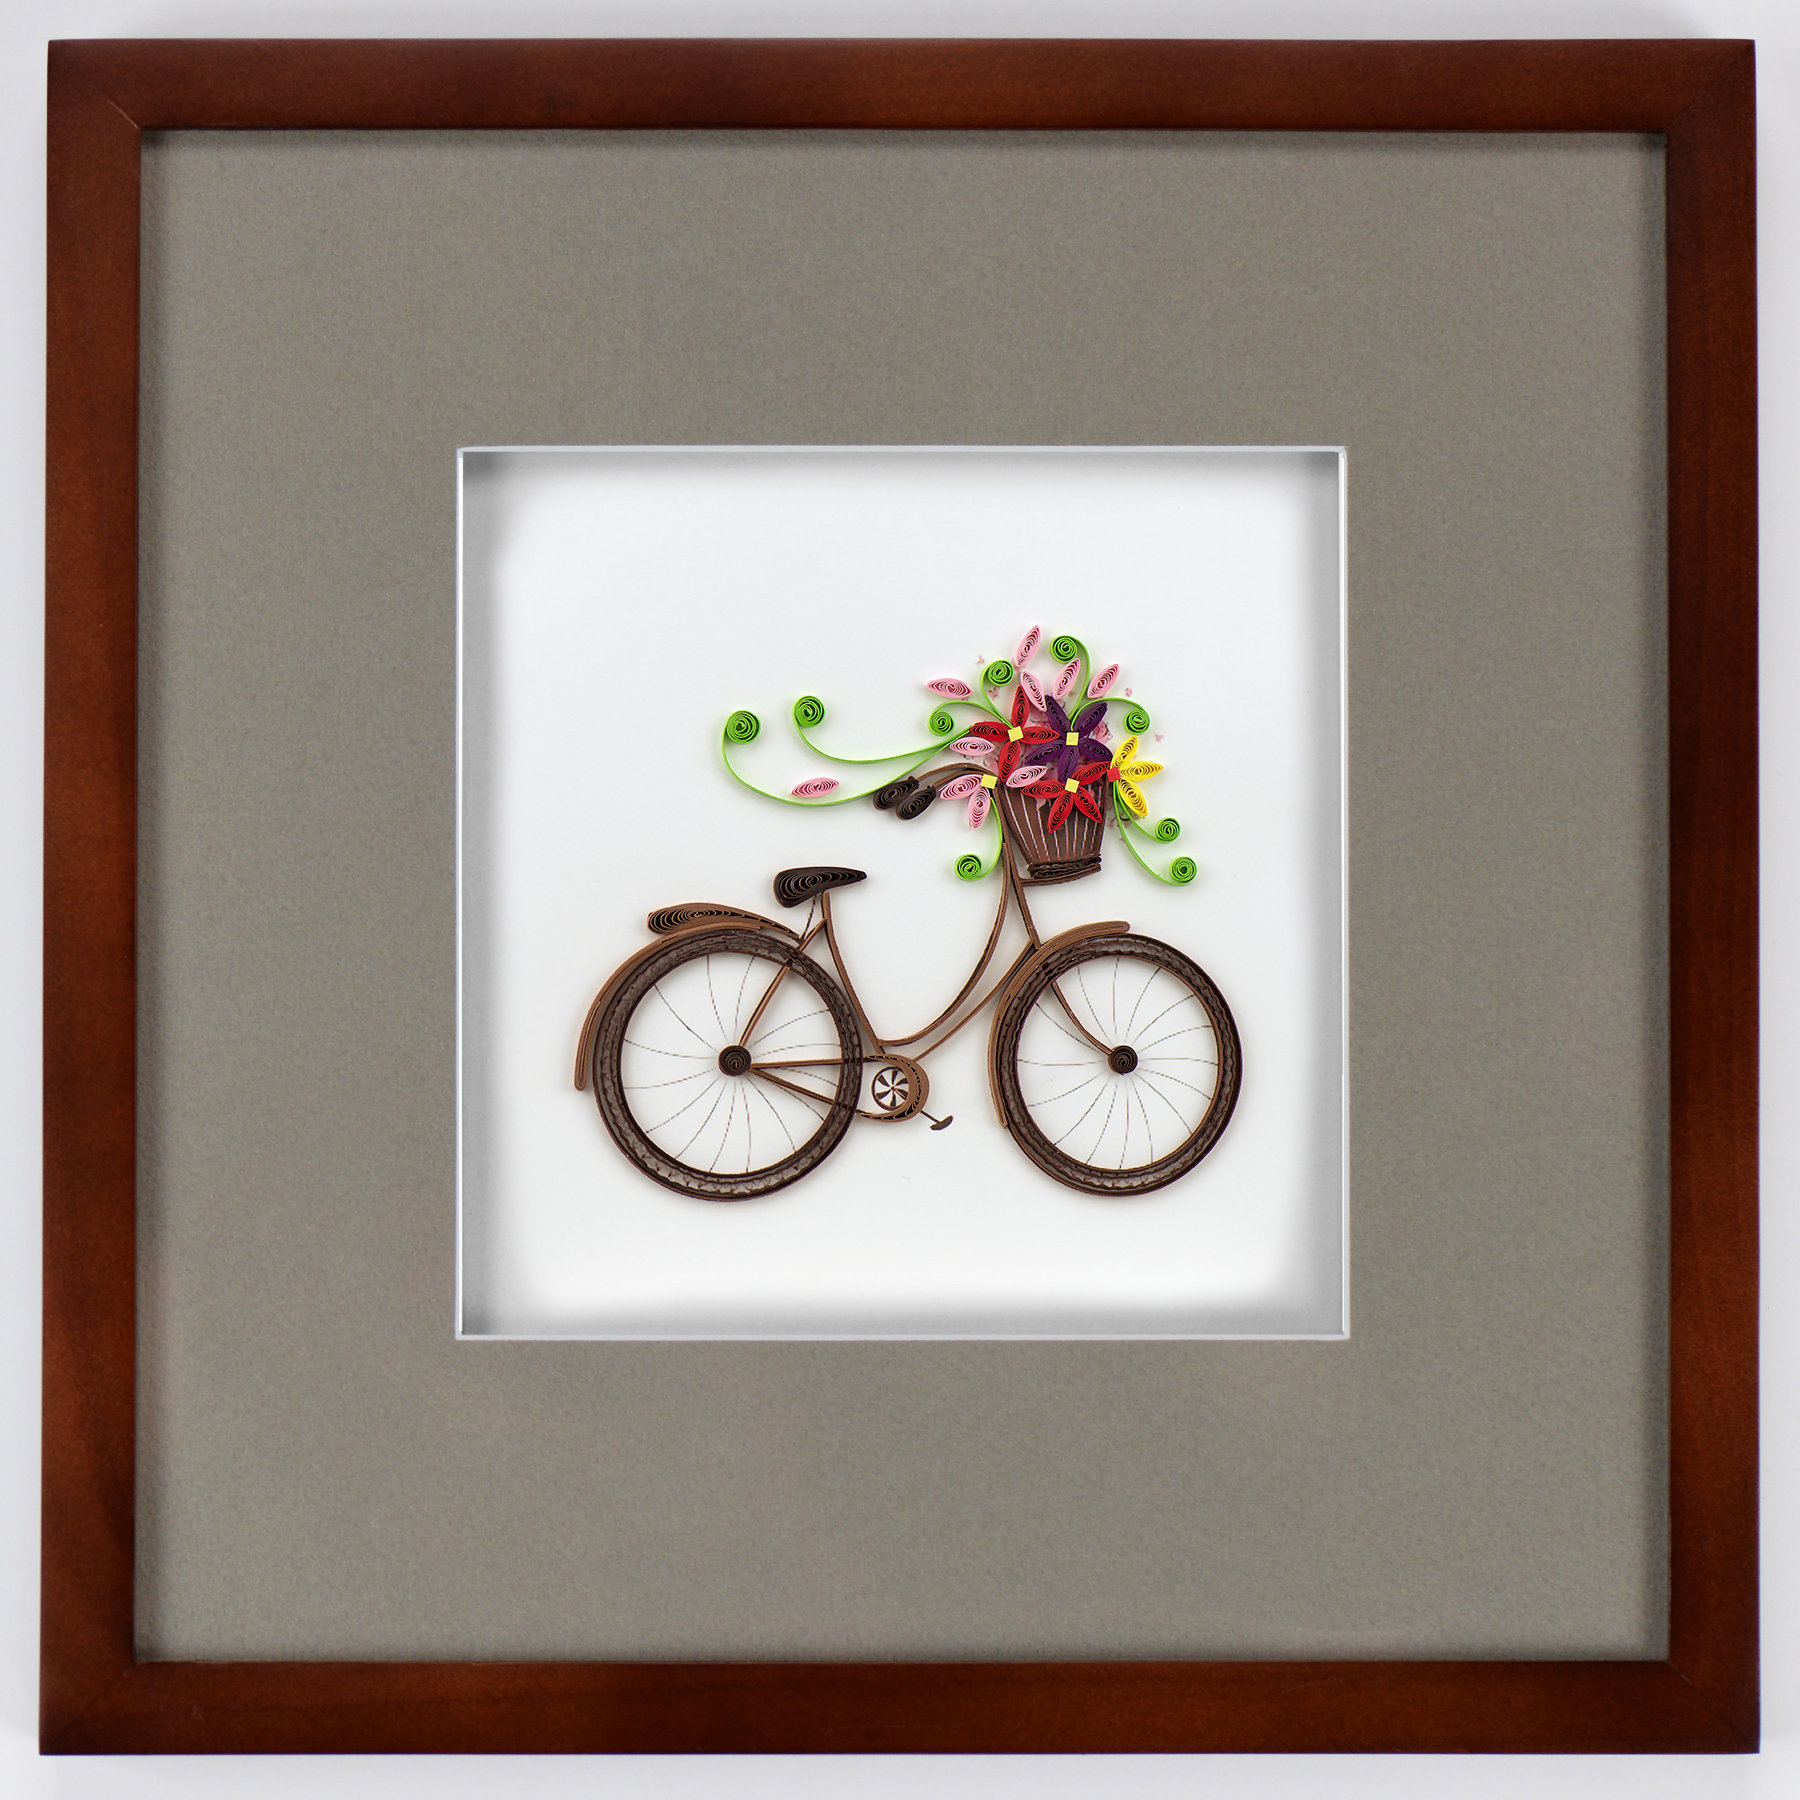 Bike Wall Decor By August Grove Regarding Well Known August Grove Bicycle With Flower Basket Framed Wall Decor (Gallery 10 of 20)